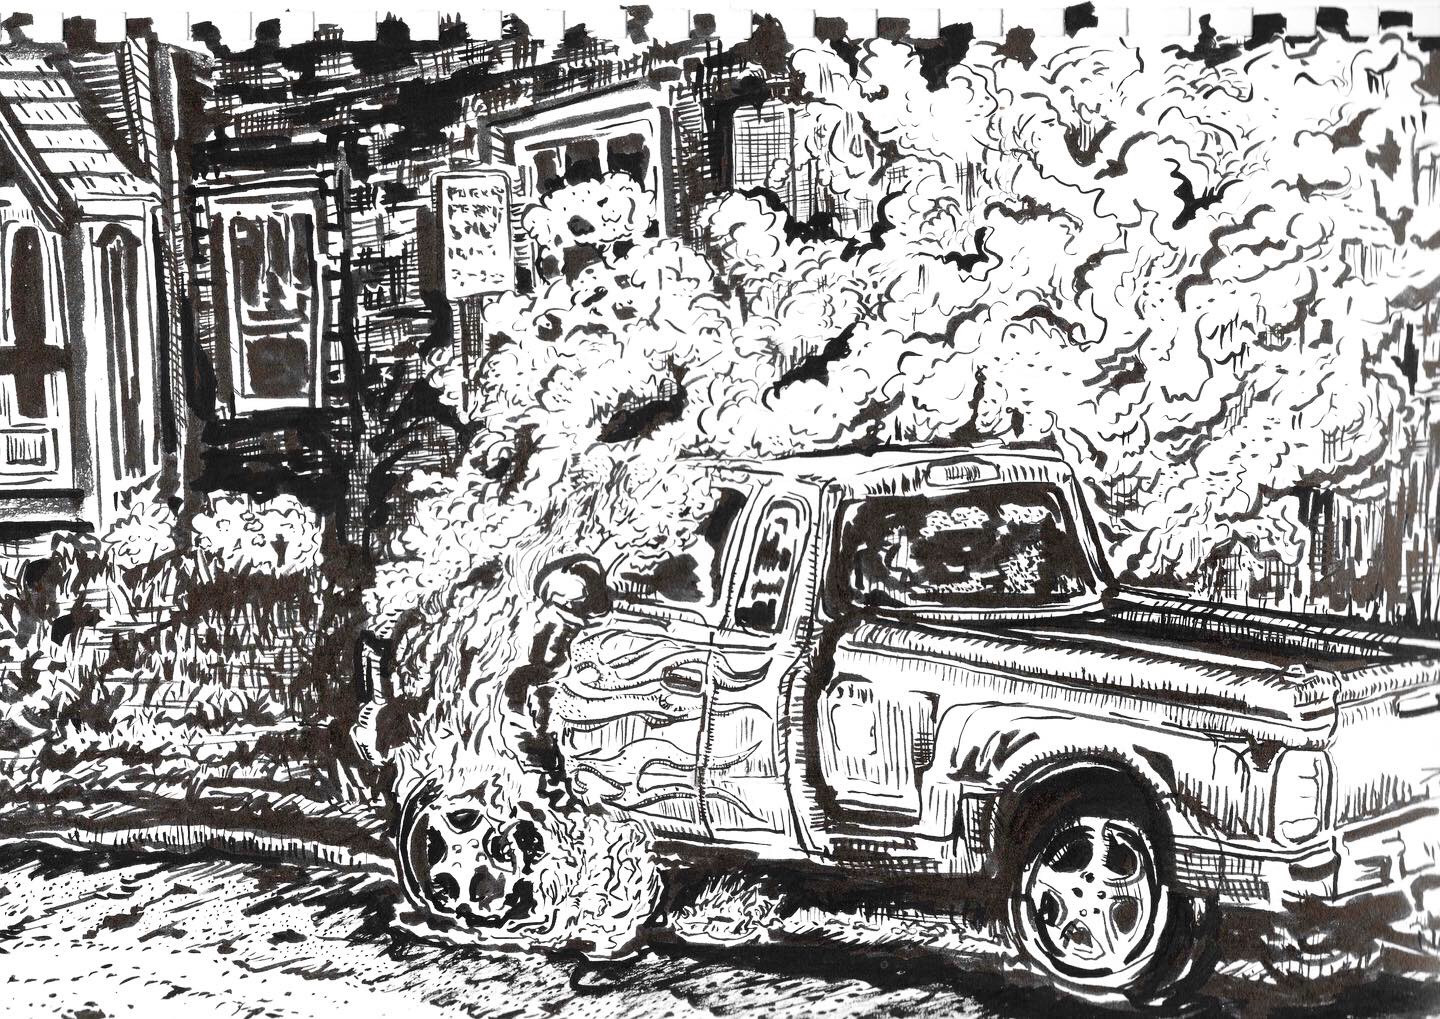 Car With Flames On Fire (Sketchbook Project)